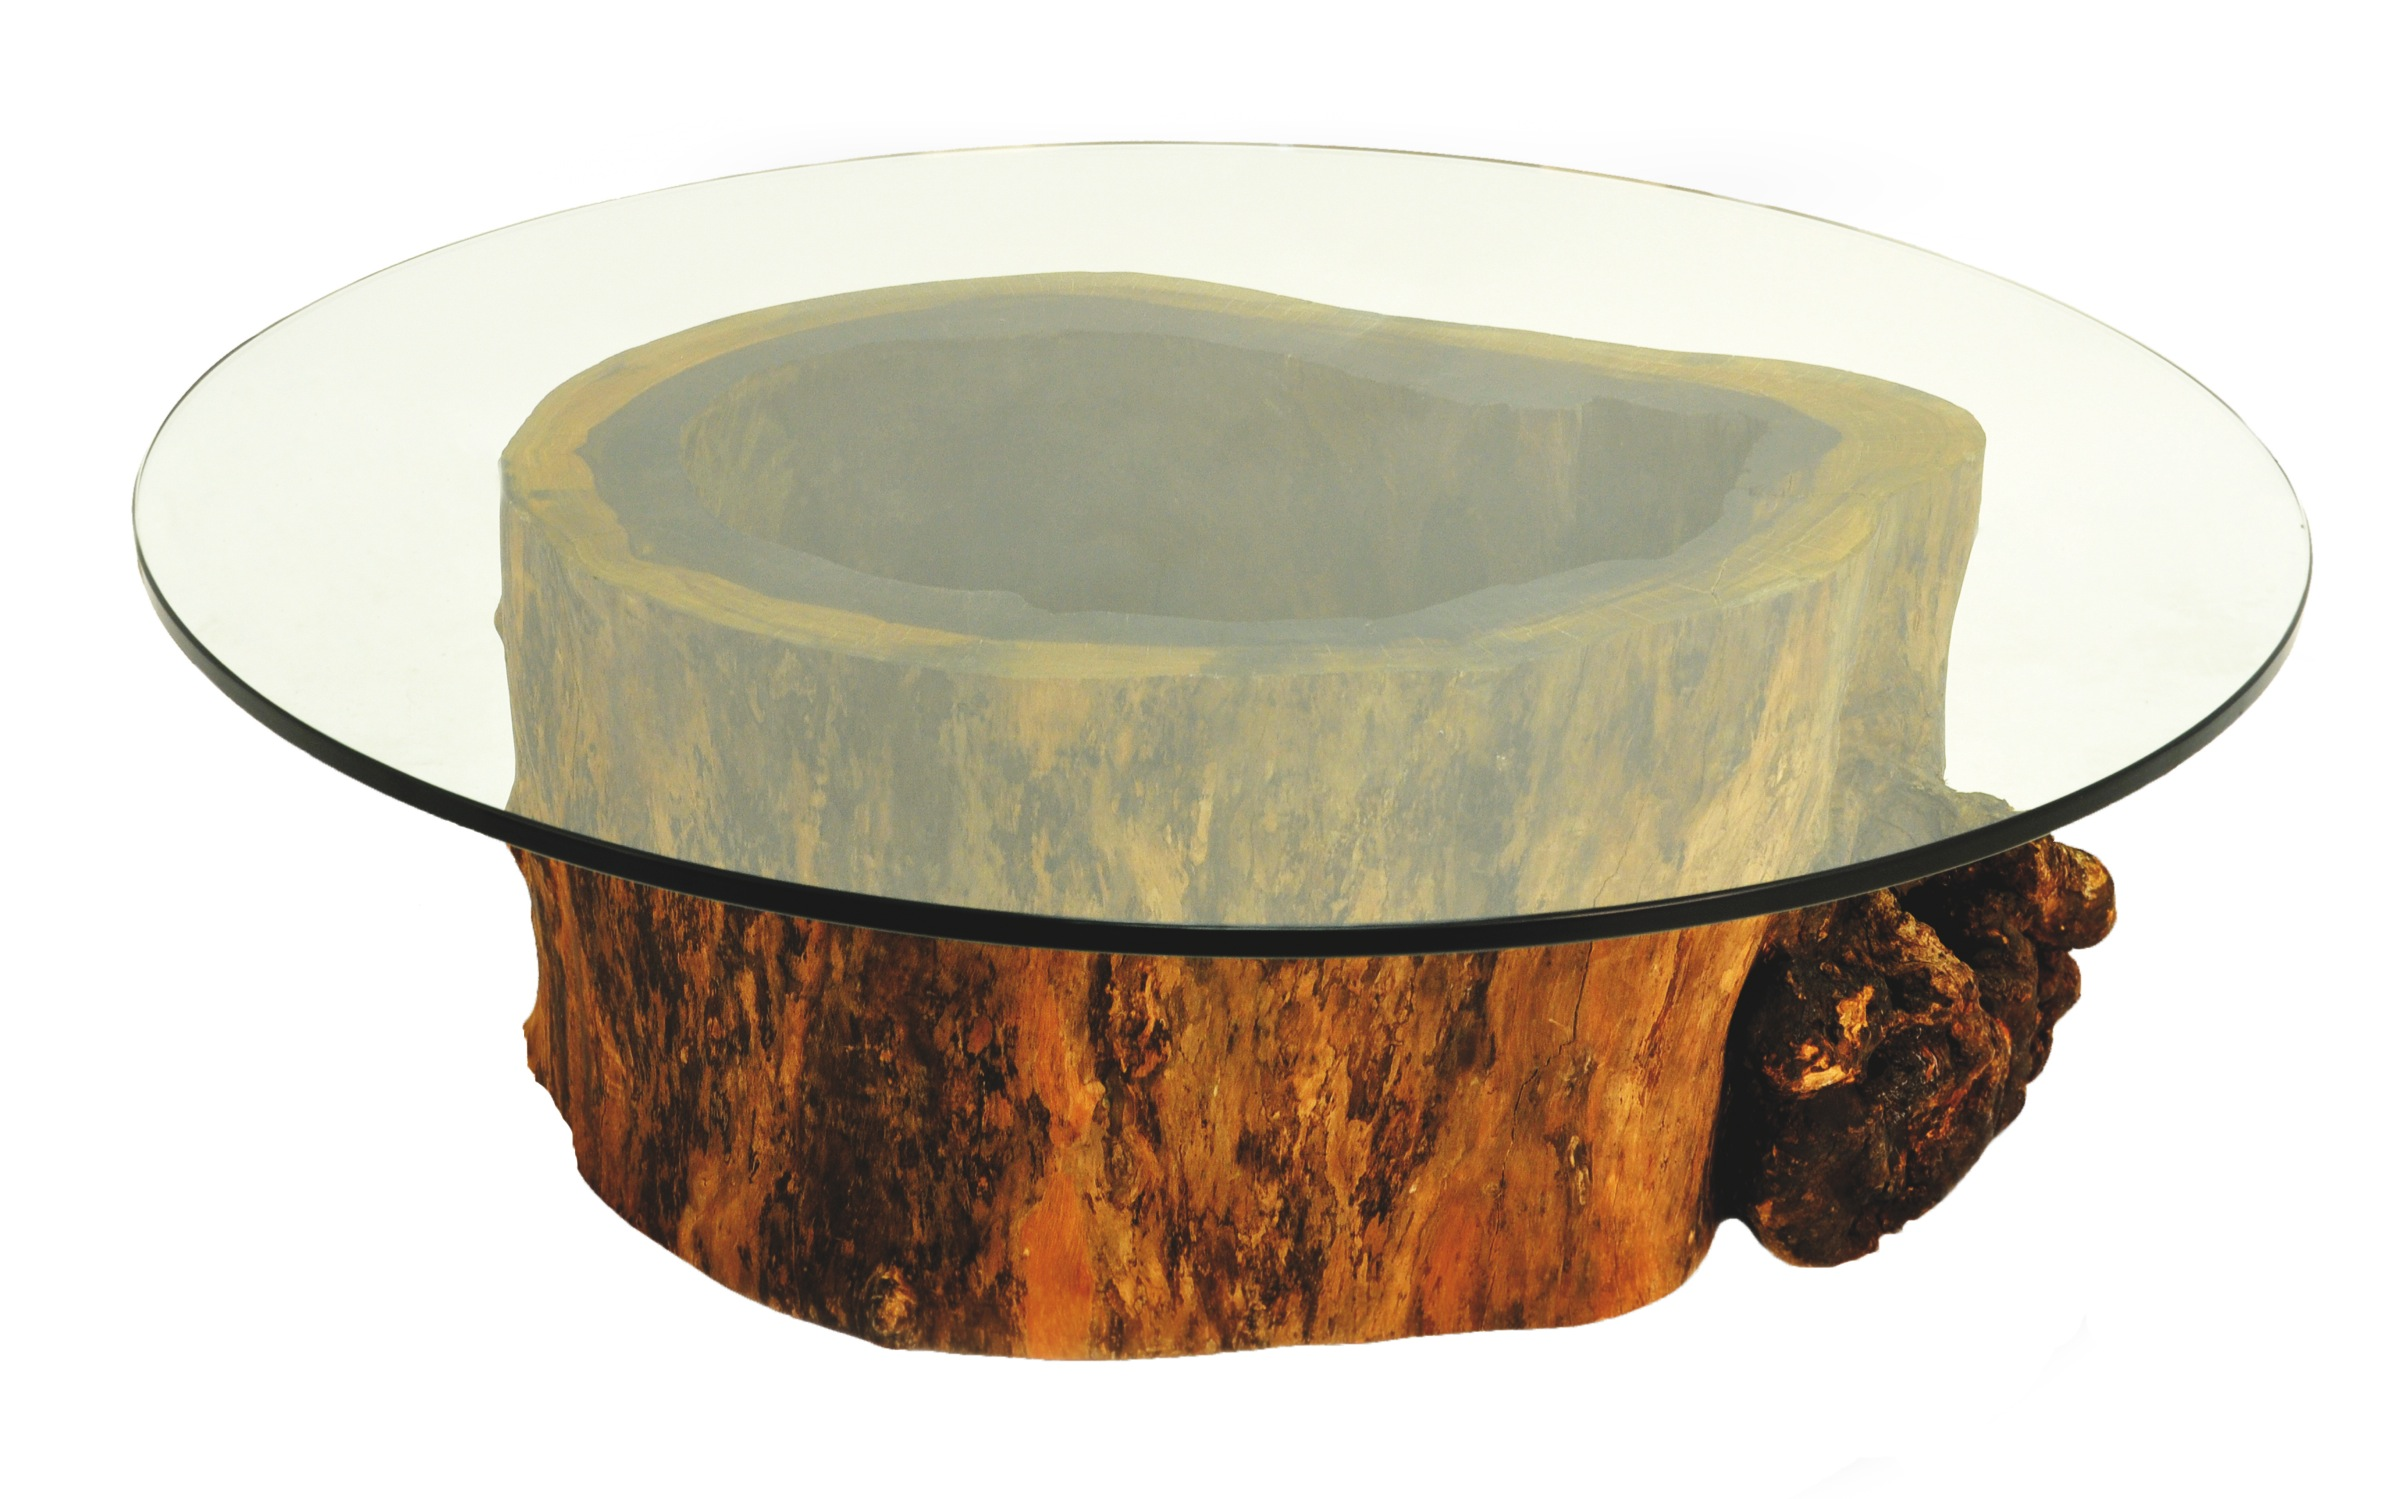 Glass Top Coffee Table Made Of Reclaimed Wood Salvaged Hollow Trunk From A Tree That Round Wood Coffee Table With Glass Top (View 3 of 10)